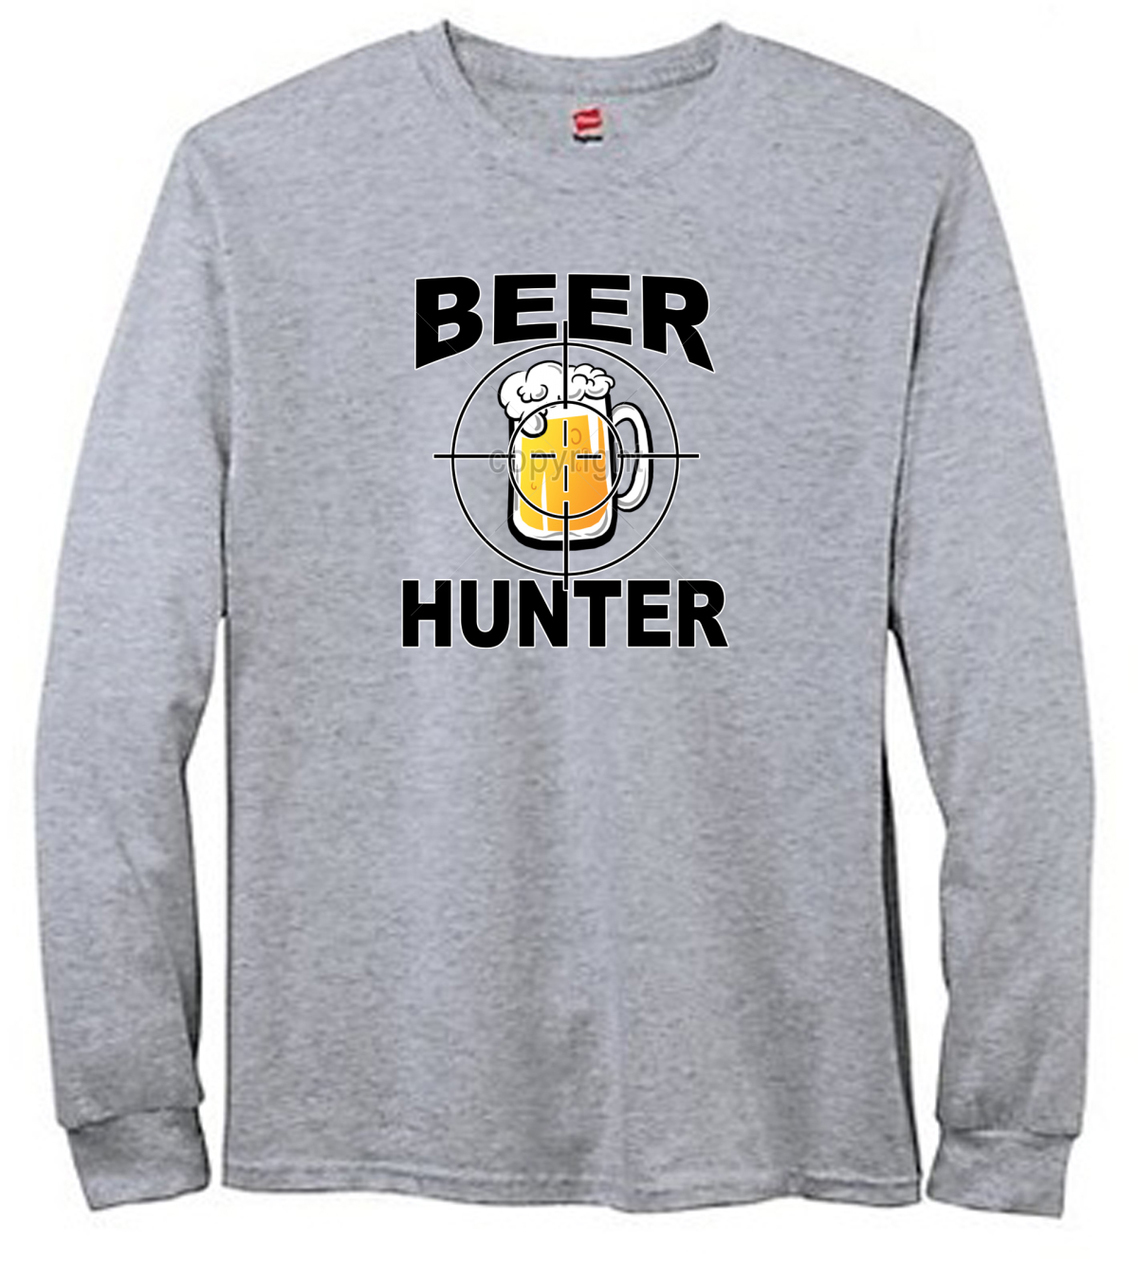 Beer Hunter Mug Men's Long Sleeve T-Shirt